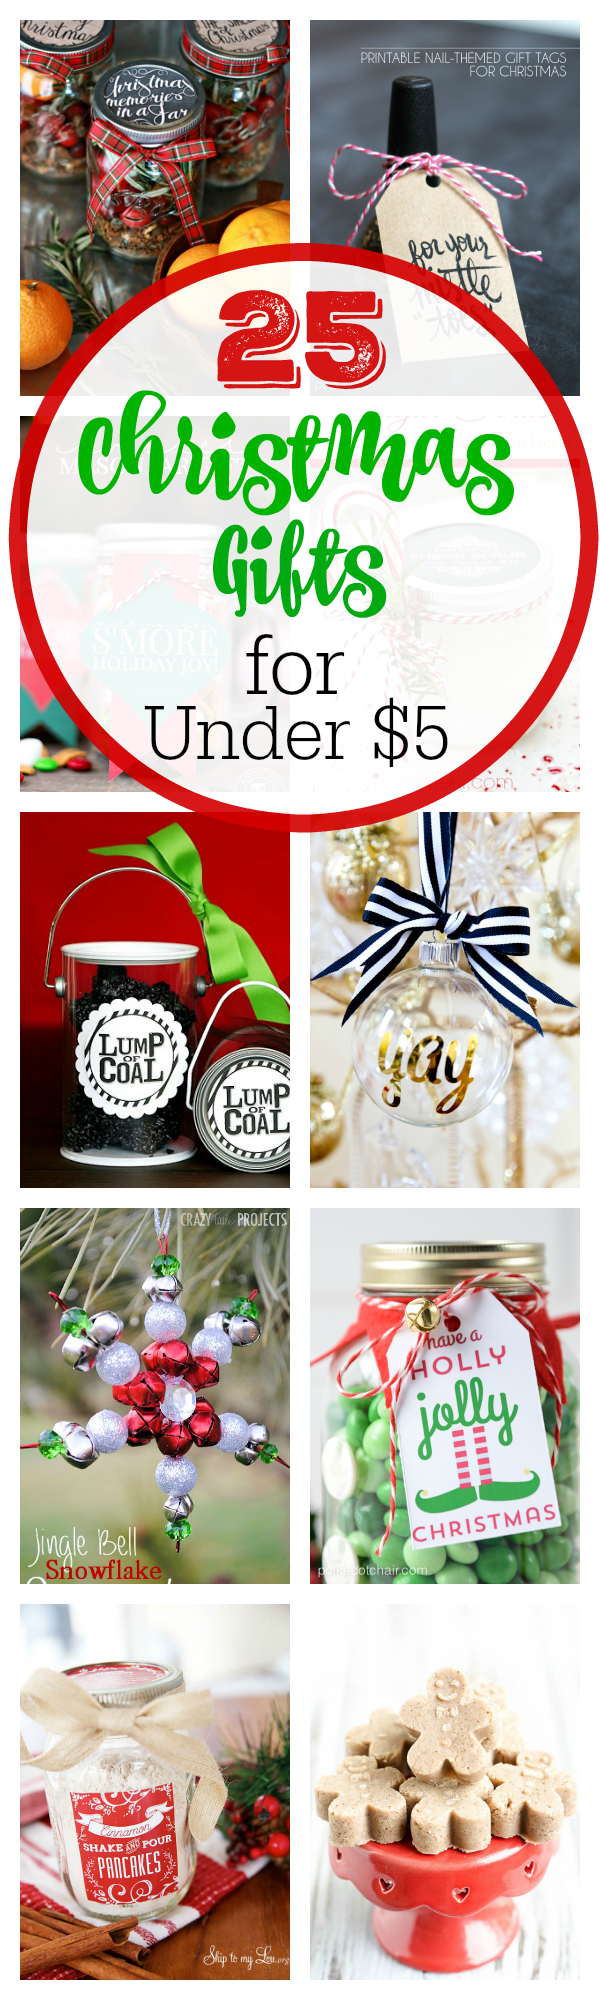 25 Cheap Gifts for Christmas-for Under $5-These cute Christmas and holiday gift ideas are perfect for friends, neighbors and coworkers. Easy to put together and cheap enough that it won't break the bank! #christmas #neighborgifts #giftideas #christmasgifts